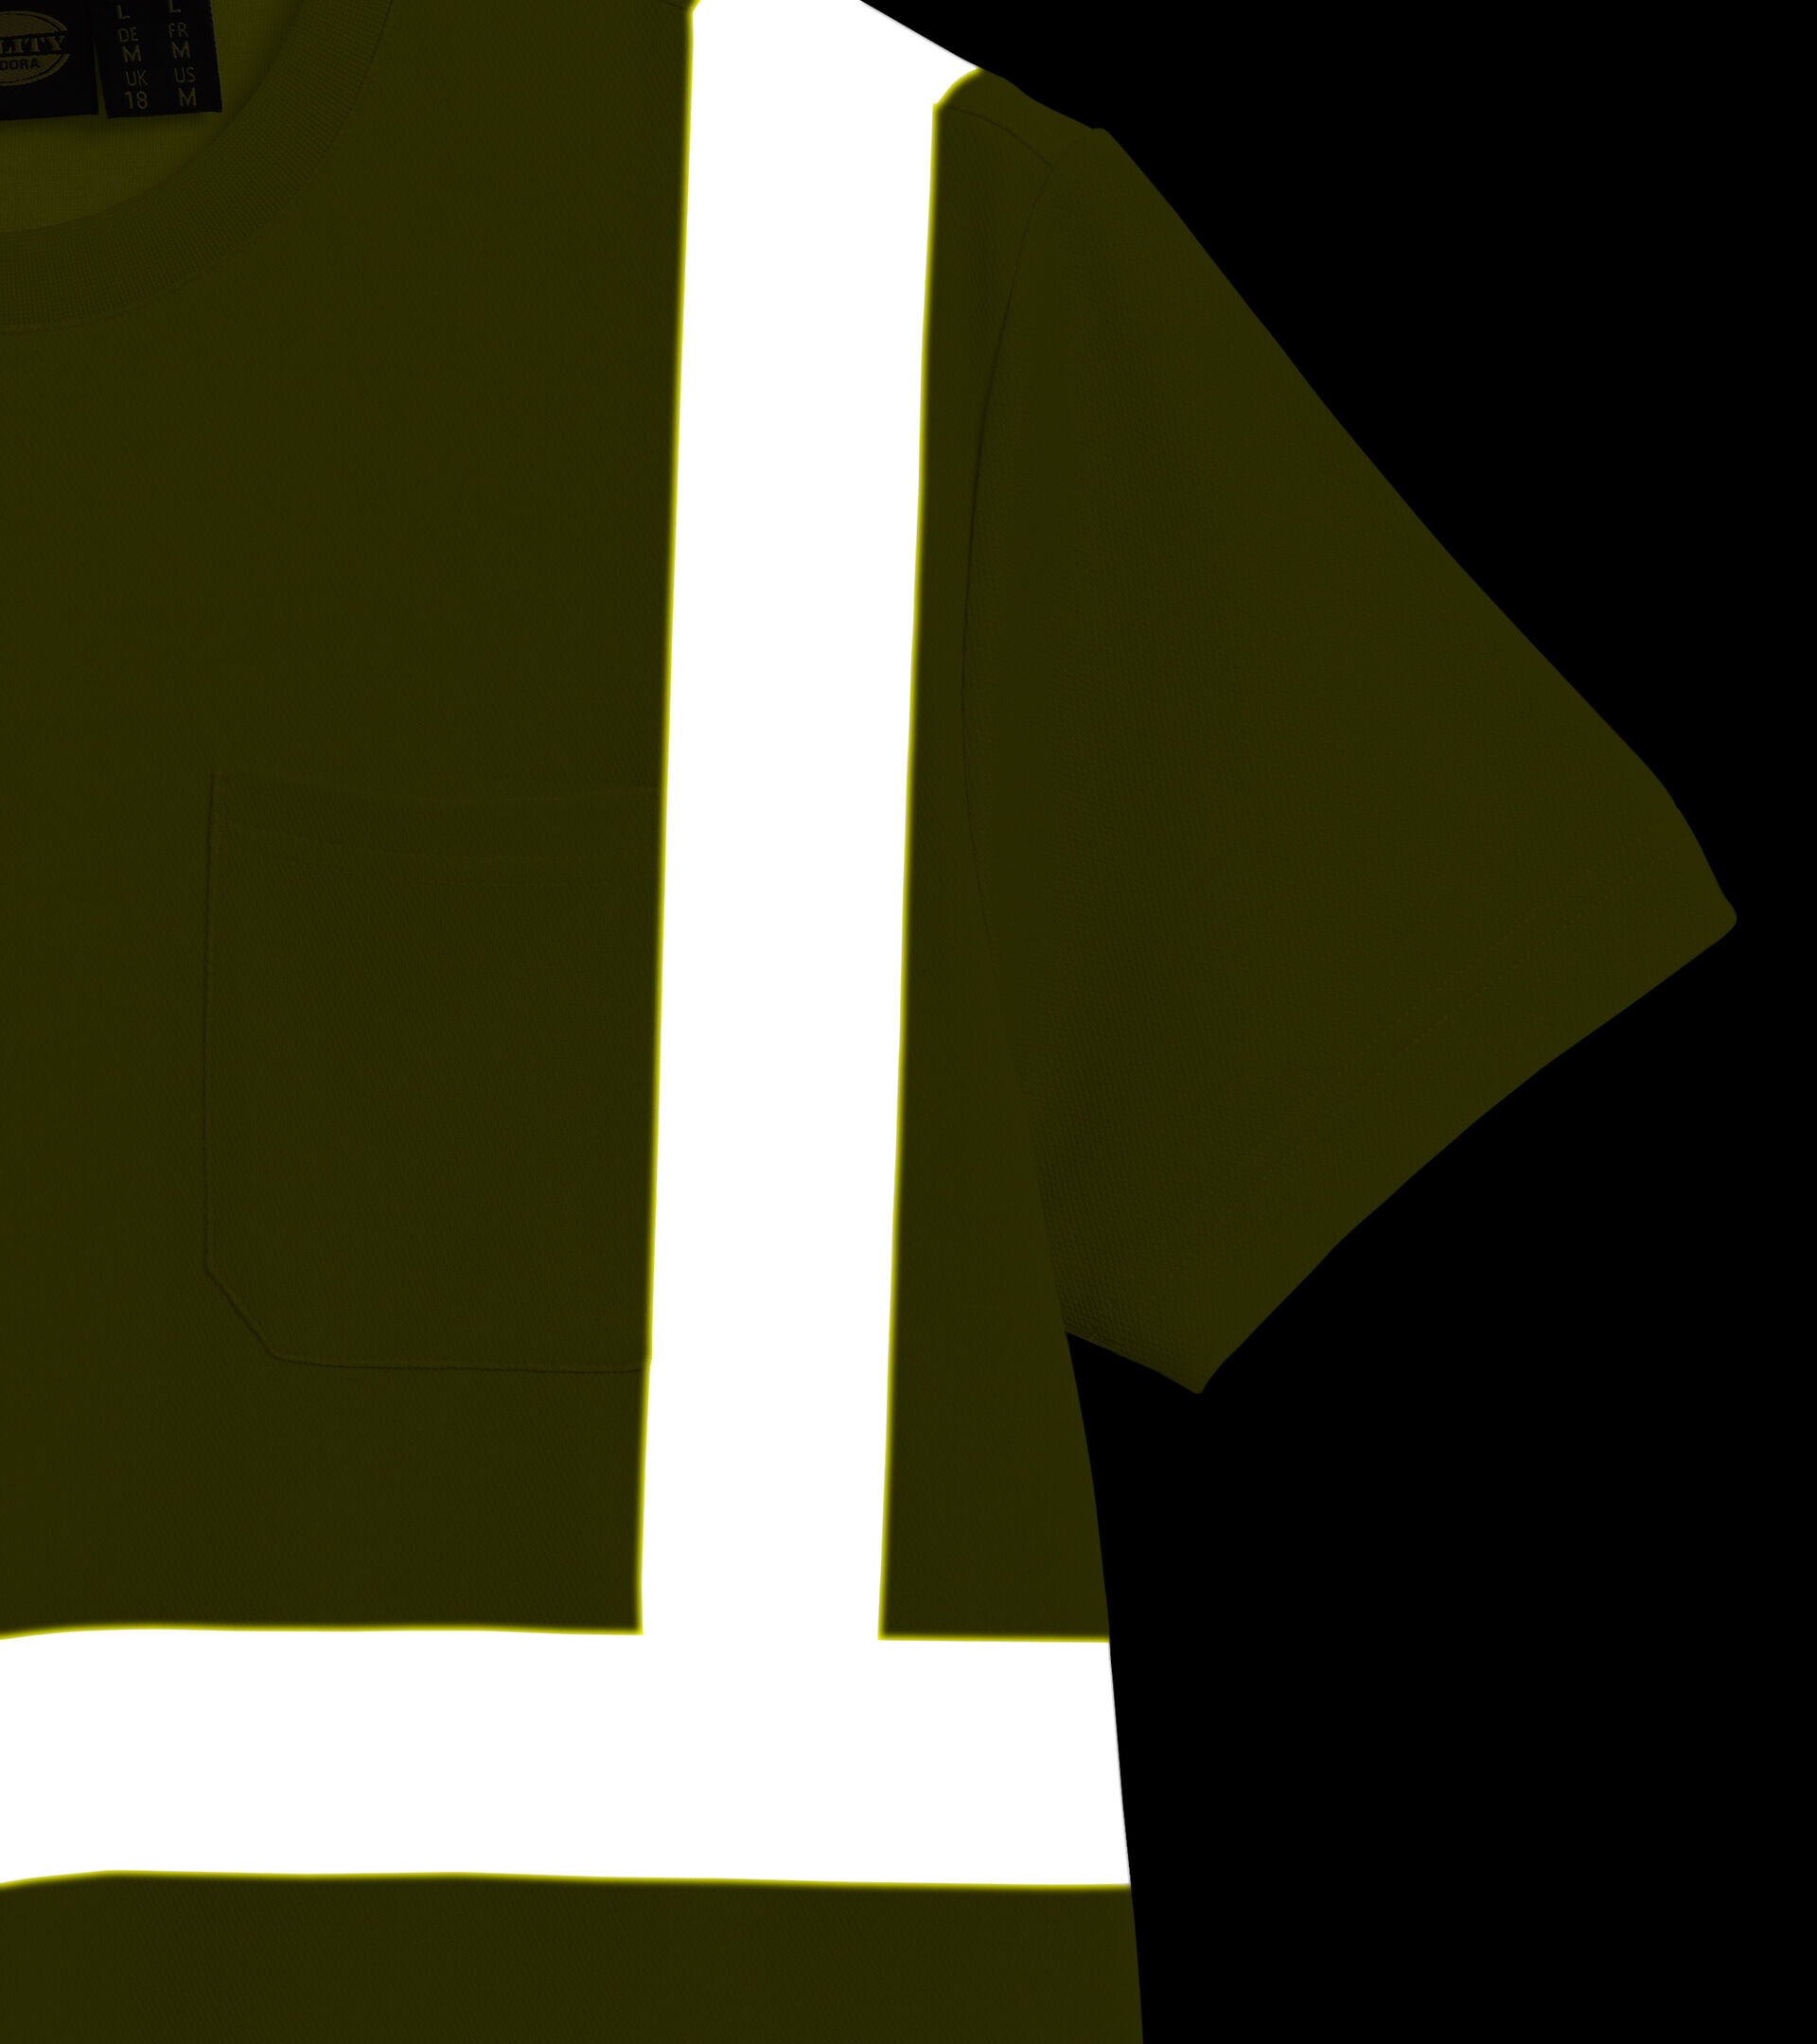 Apparel Utility UOMO T-SHIRT HV ISO 20471 FLUORESCENT YELLOW ISO20471 Utility